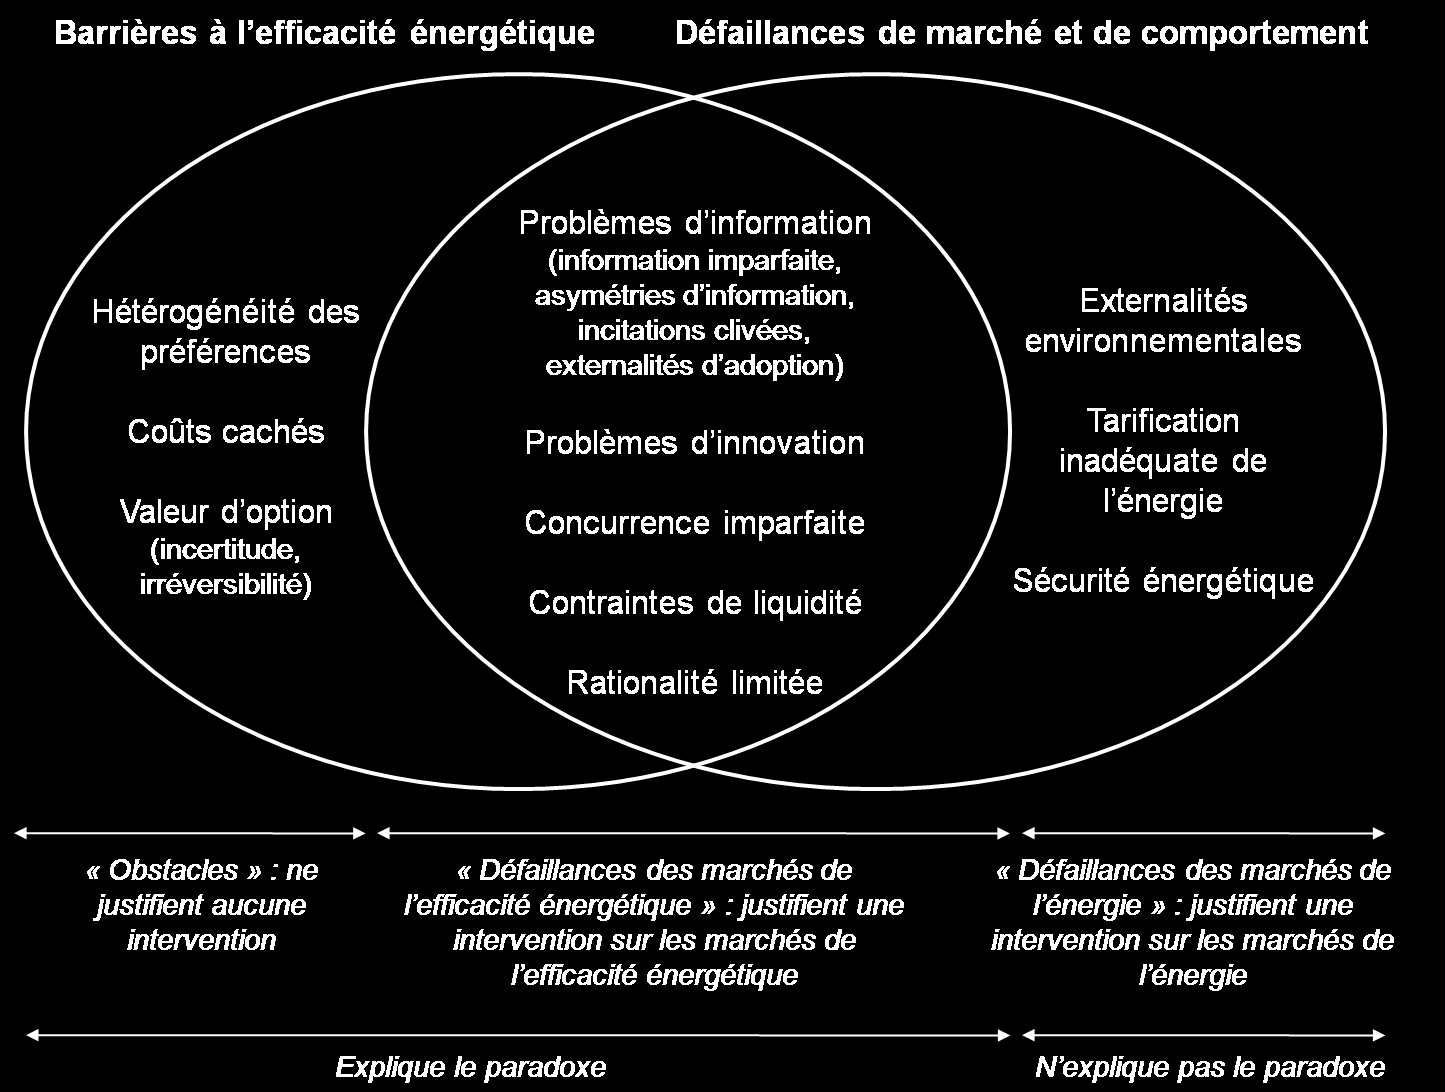 d équipements technologiquement matures, et s attachent essentiellement à évaluer la direction et le taux du progrès technologique par rapport à une référence optimale : The diffusion of economically